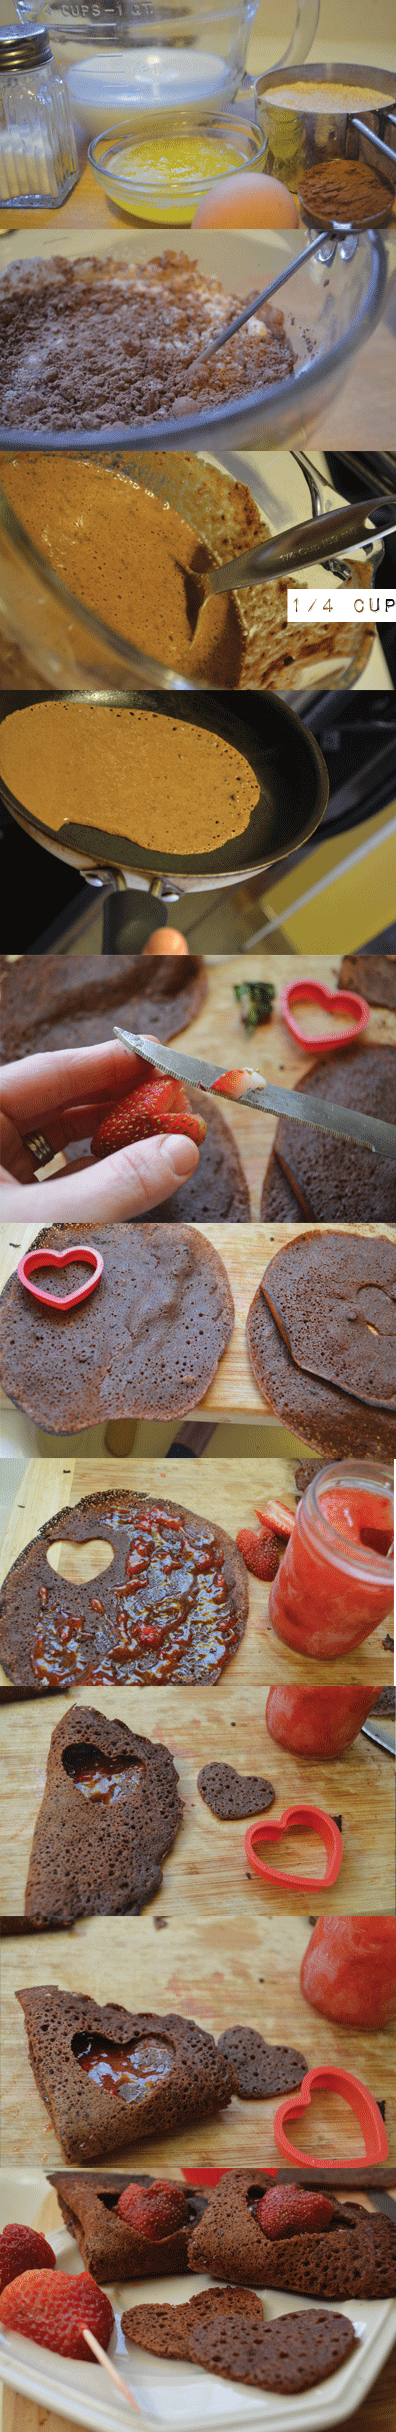 Peekaboo Chocolate Crepes from Don't Panic Mom